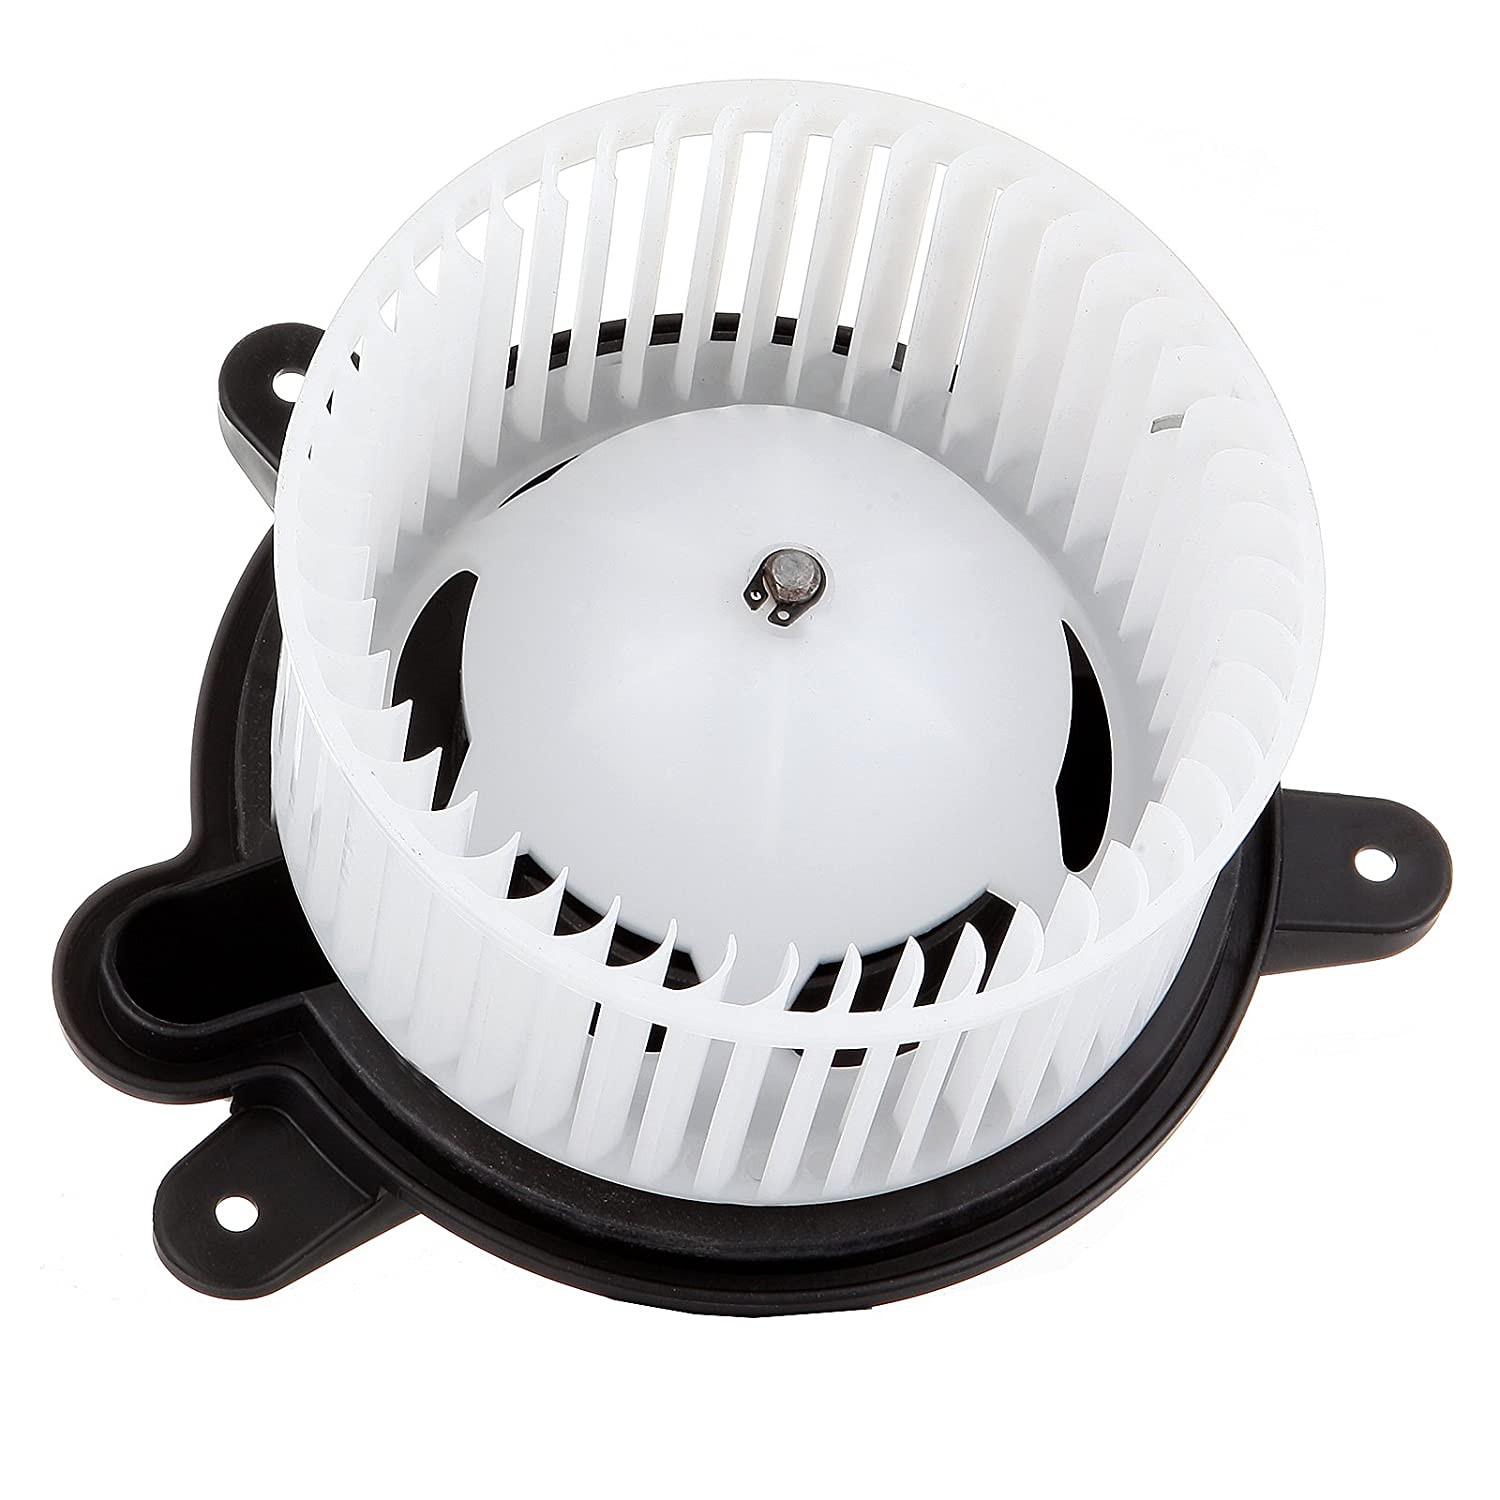 OCPTY A/C Heater Blower Motor ABS w/Fan Cage Air Conditioning HVAC Replacement fit for 1997-2001 Jeep Cherokee/1997-2001 Jeep Wrangler 058432-5209-1451471821